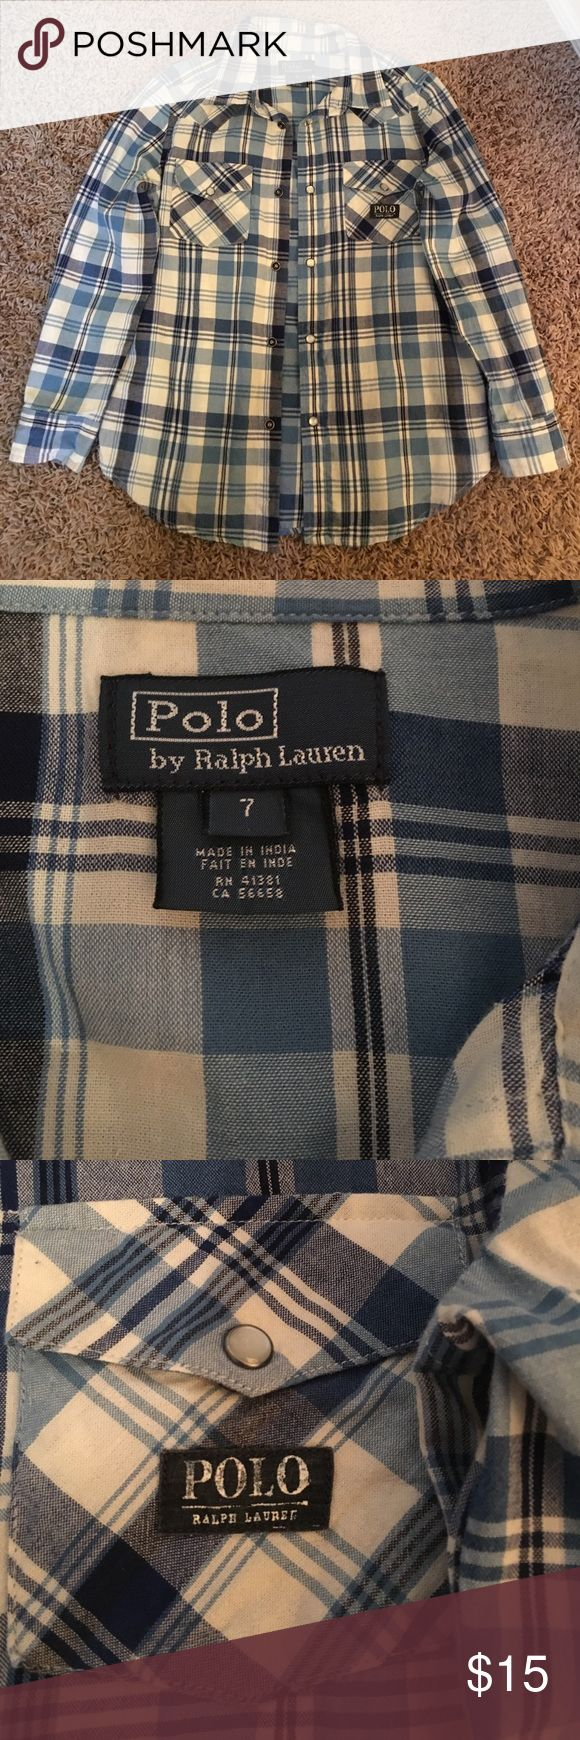 Selling this Polo blue and white checkered long sleeve shirt. on Poshmark! My username is: glamour4sale. #shopmycloset #poshmark #fashion #shopping #style #forsale #Polo by Ralph Lauren #Other